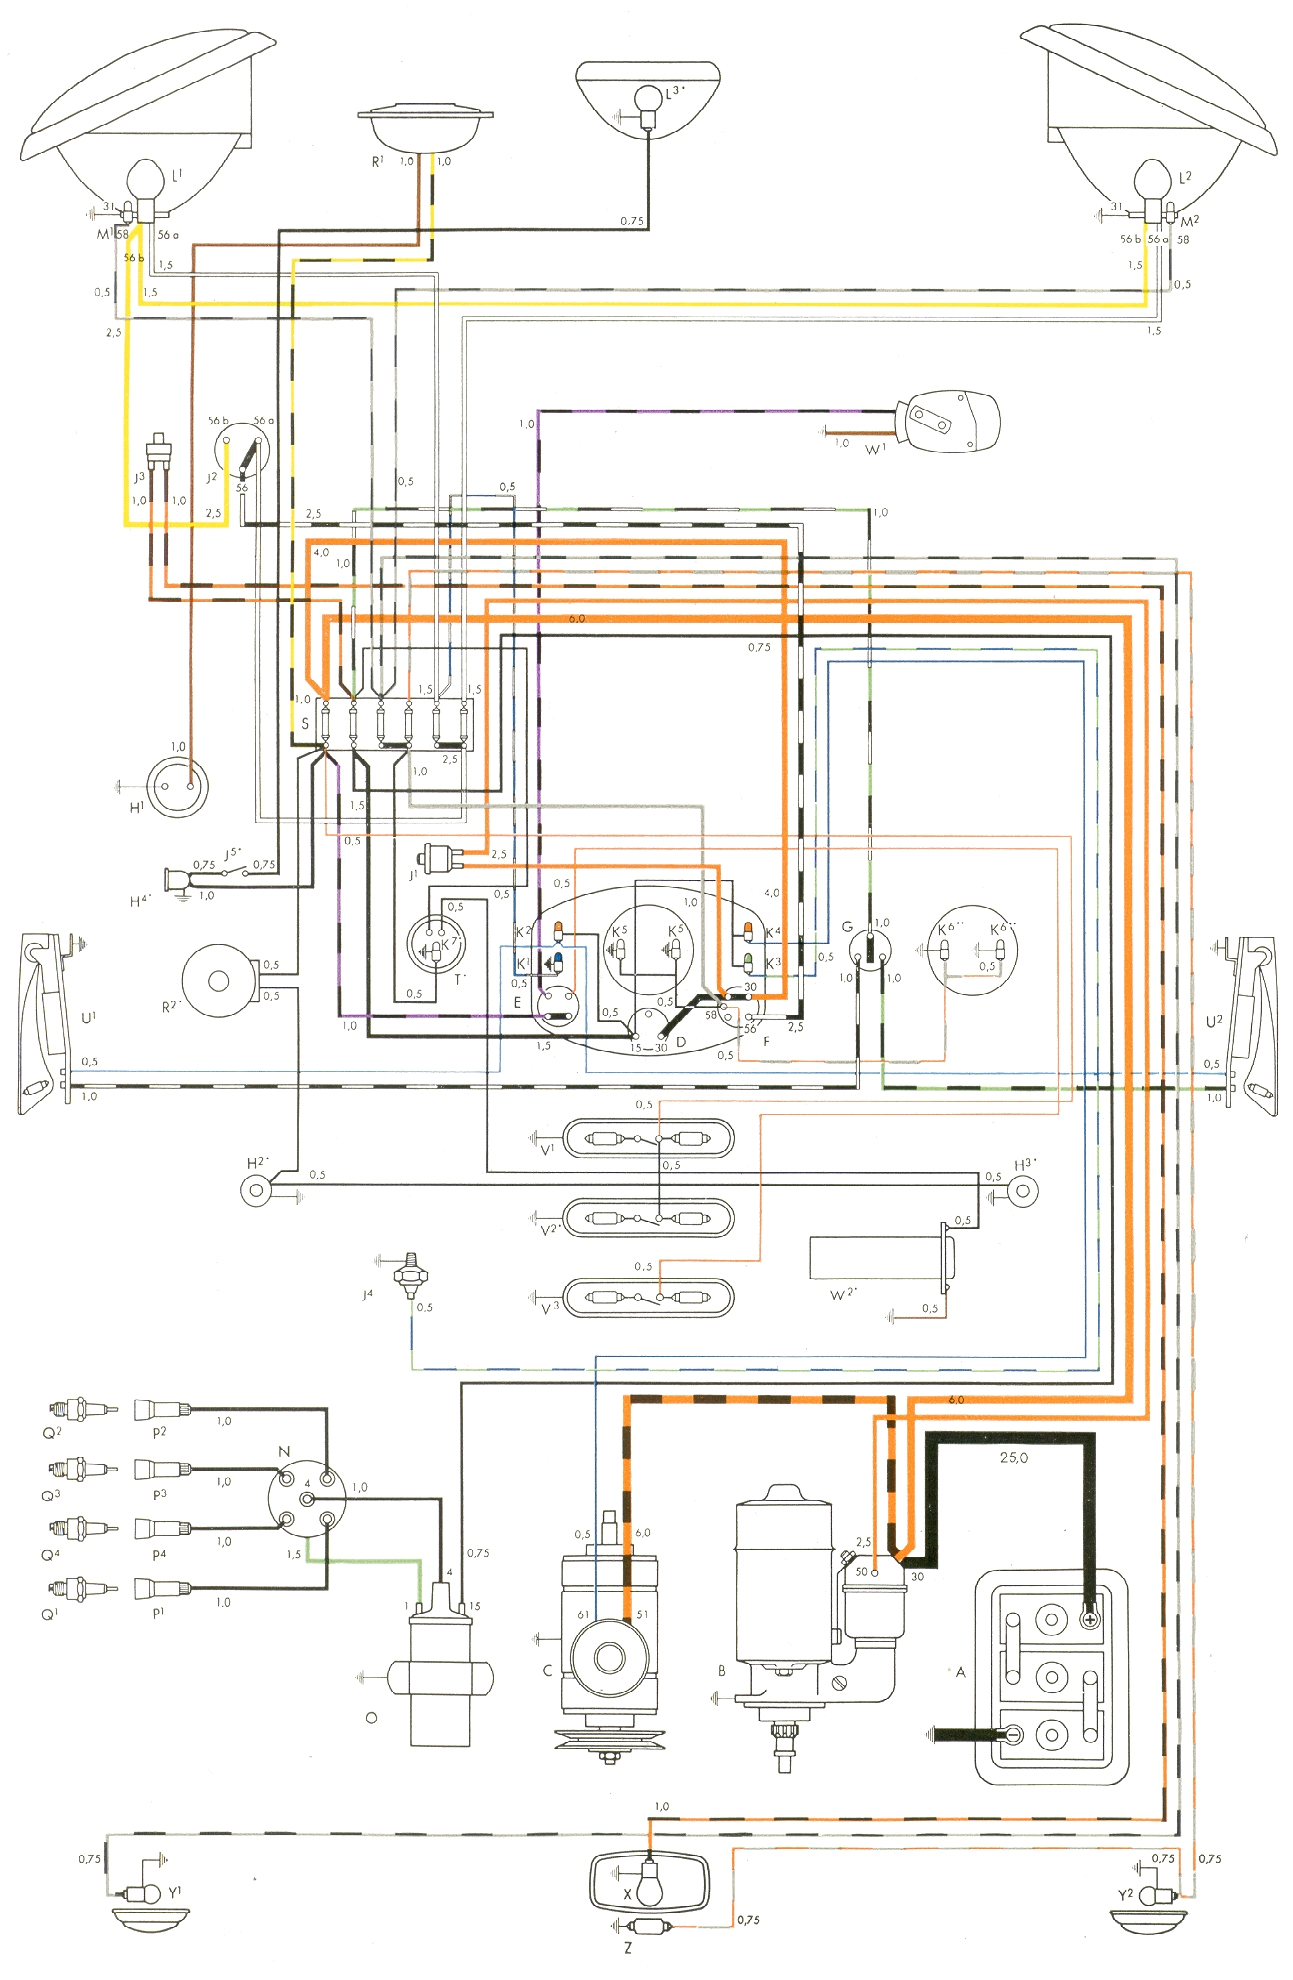 vintagebus com vw bus and other wiring diagrams mix 73 vw bug signal wiper